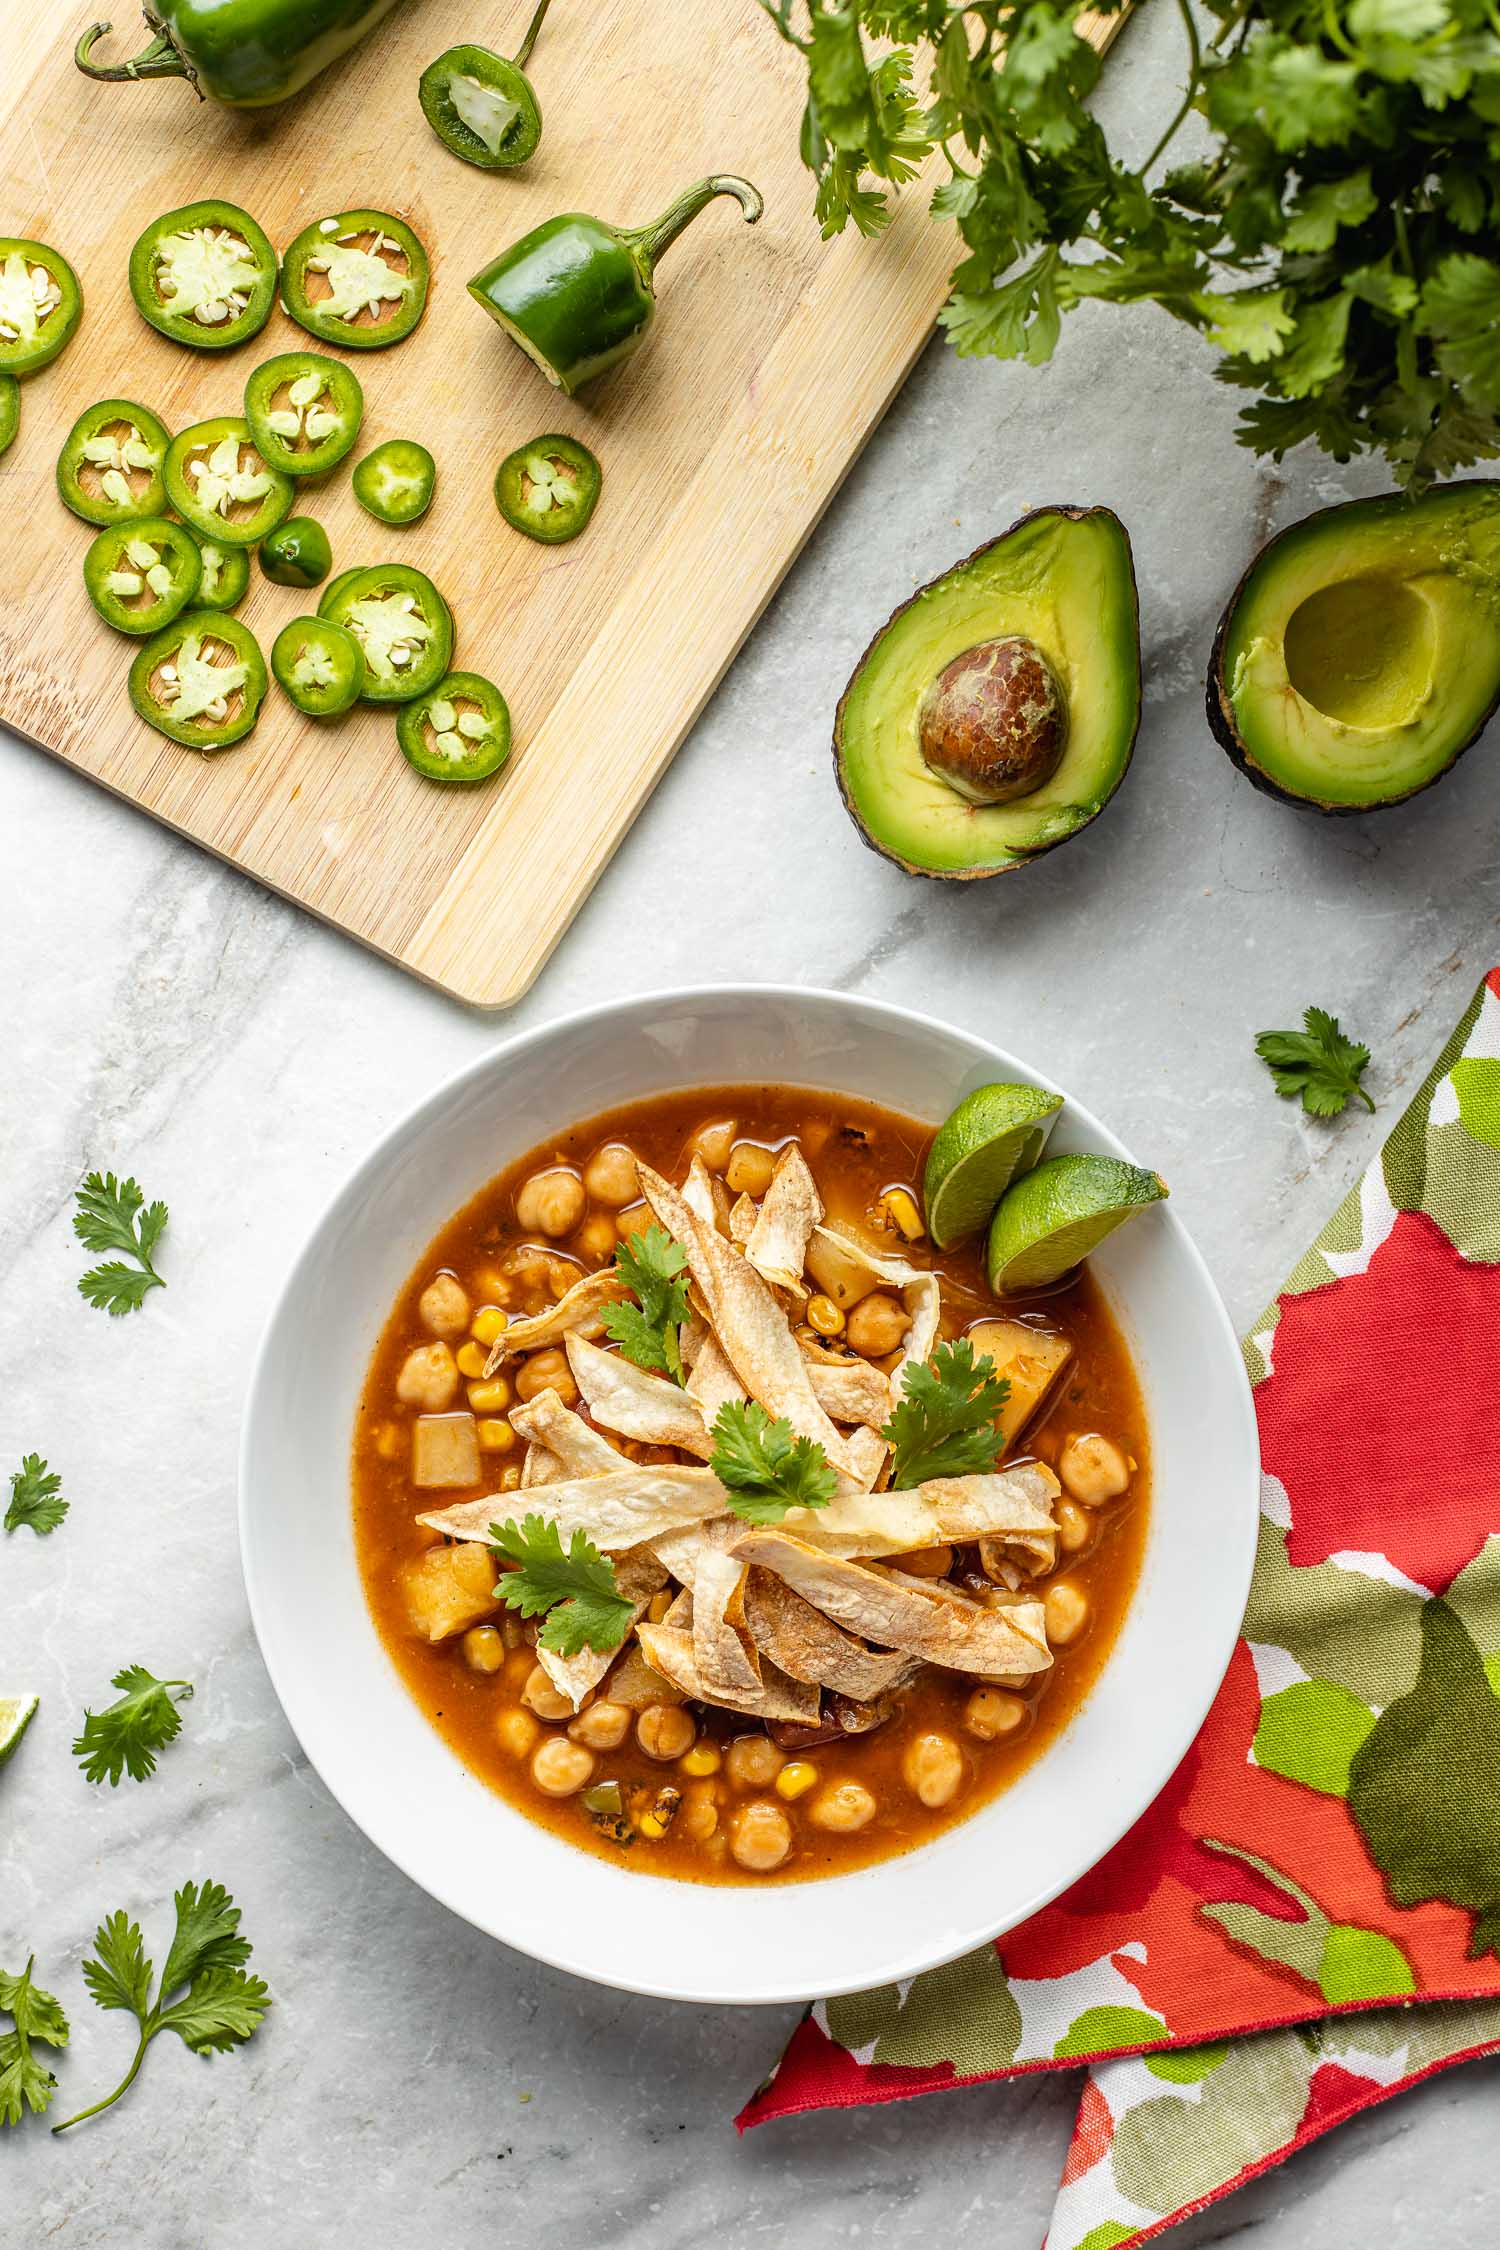 vegan Mexican tortilla soup in a white bowl topped with tortilla chips, cilantro, red print napkin to the side, sliced cutting board of jalapeno peppers, sliced avocado with pit